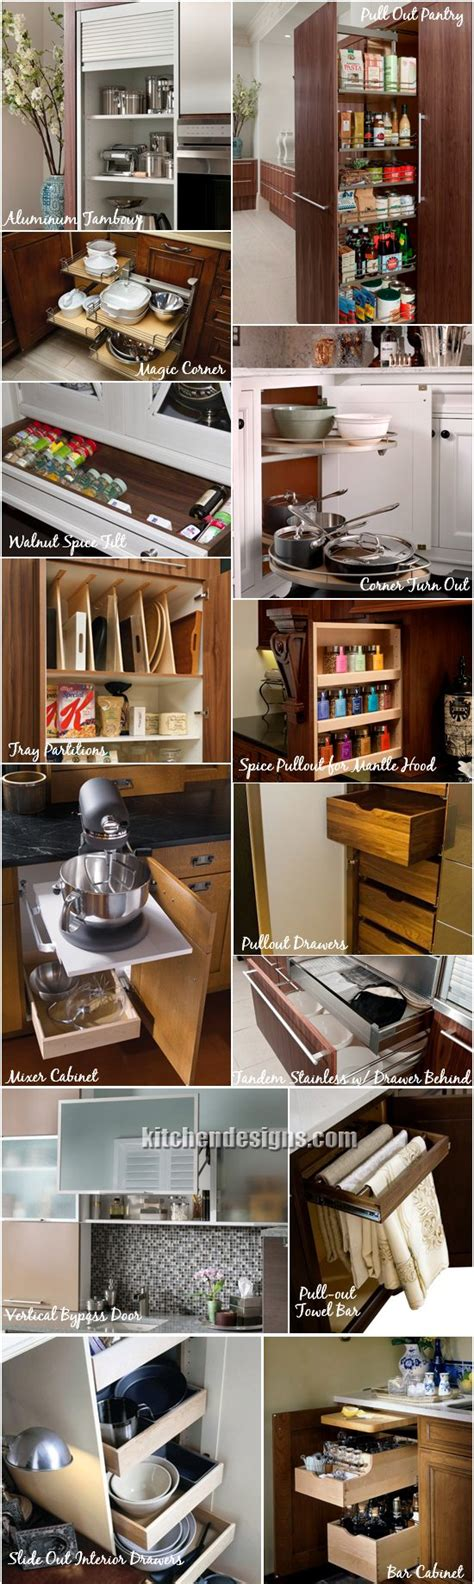 wood mode cabinet accessories cabinet and drawer ideas kitchen design by ken